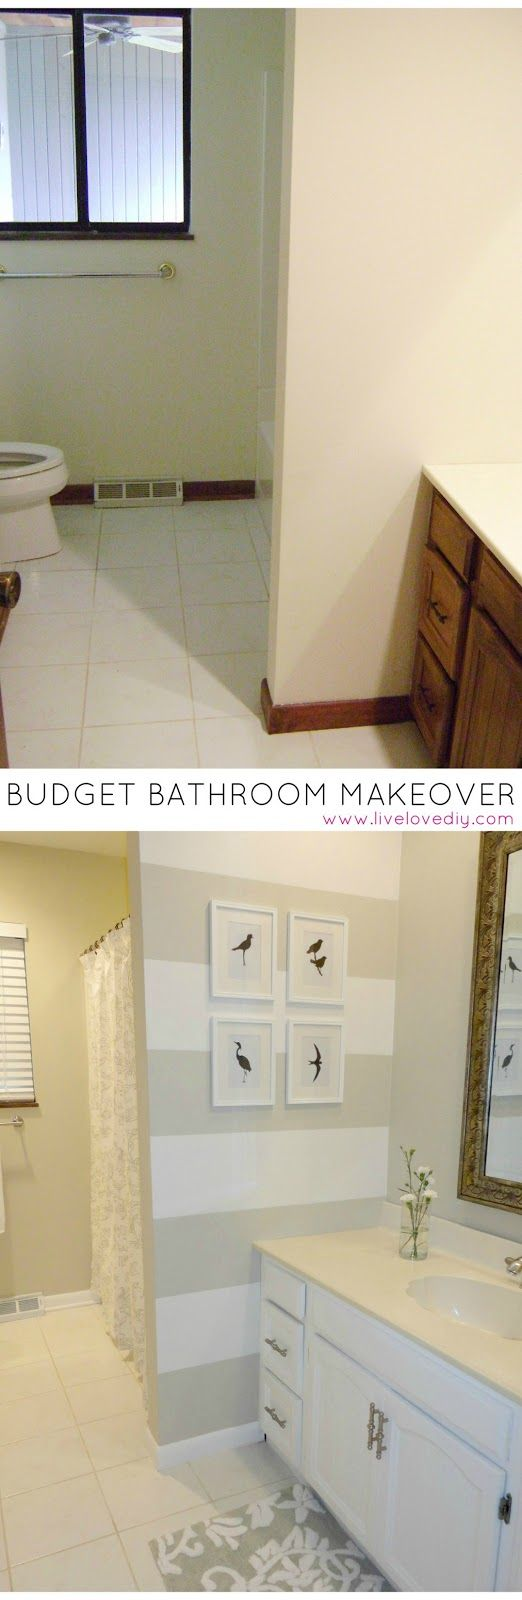 Budget Bathroom Makeover for under $200! Tons of great ideas for ...